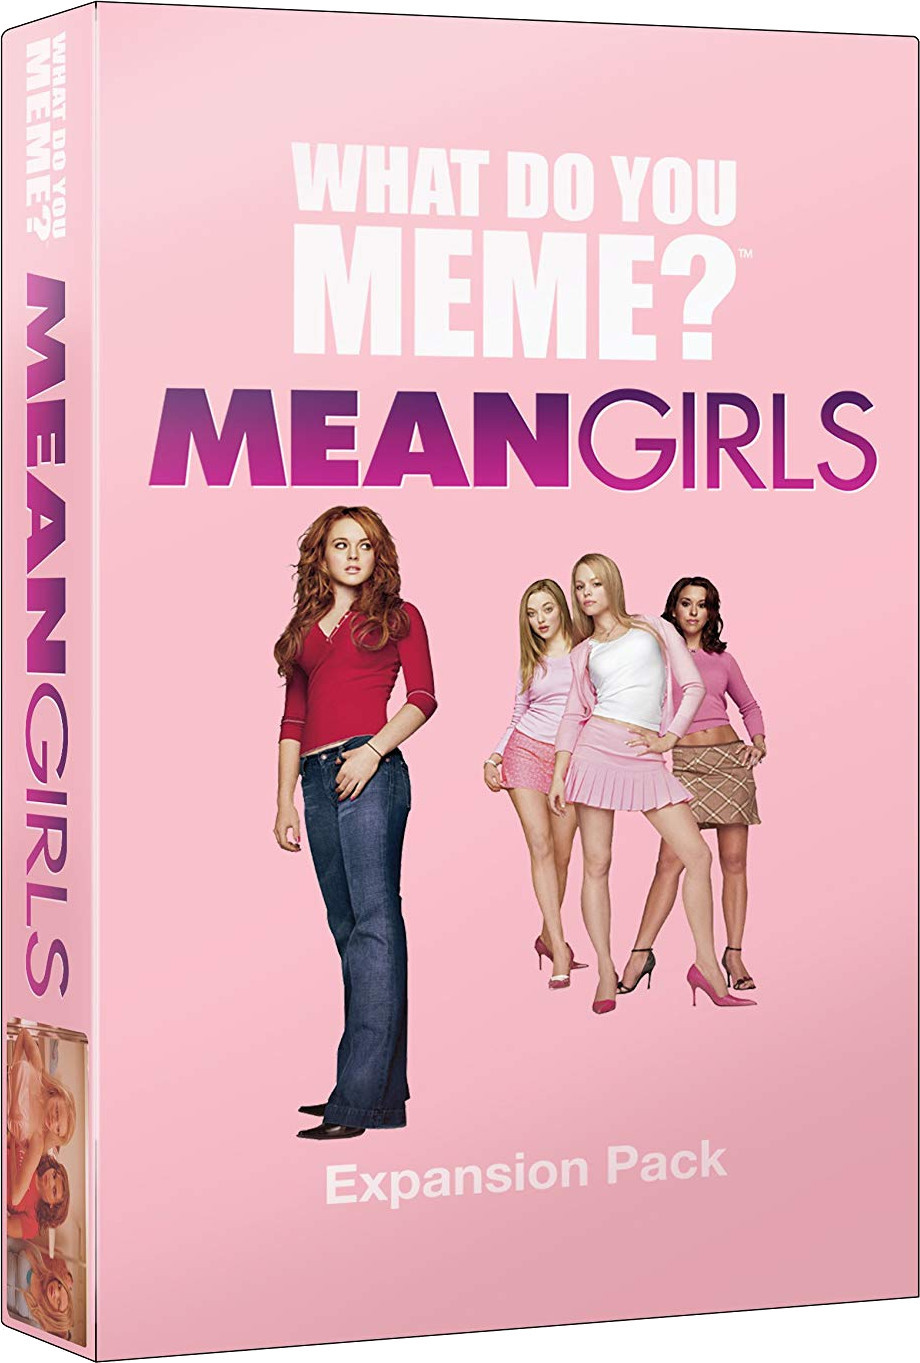 What Do You Meme? - Mean Girls (Expansion Pack) image